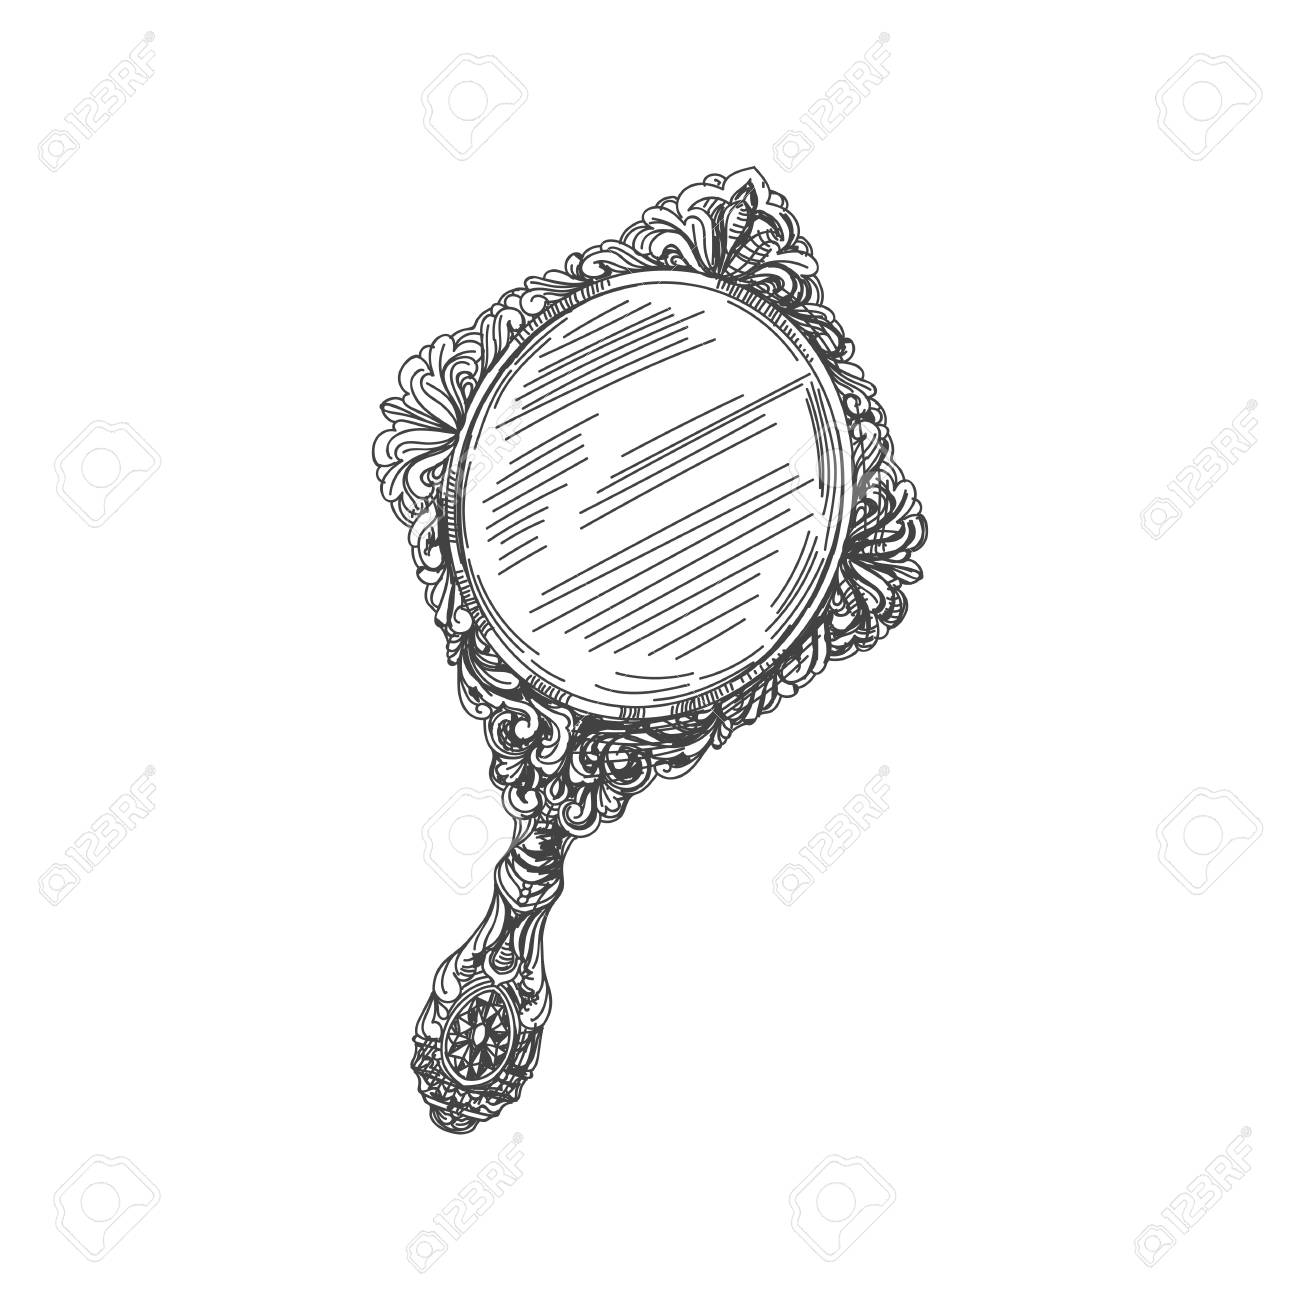 Beautiful vector hand drawn vintage hand mirror Illustration